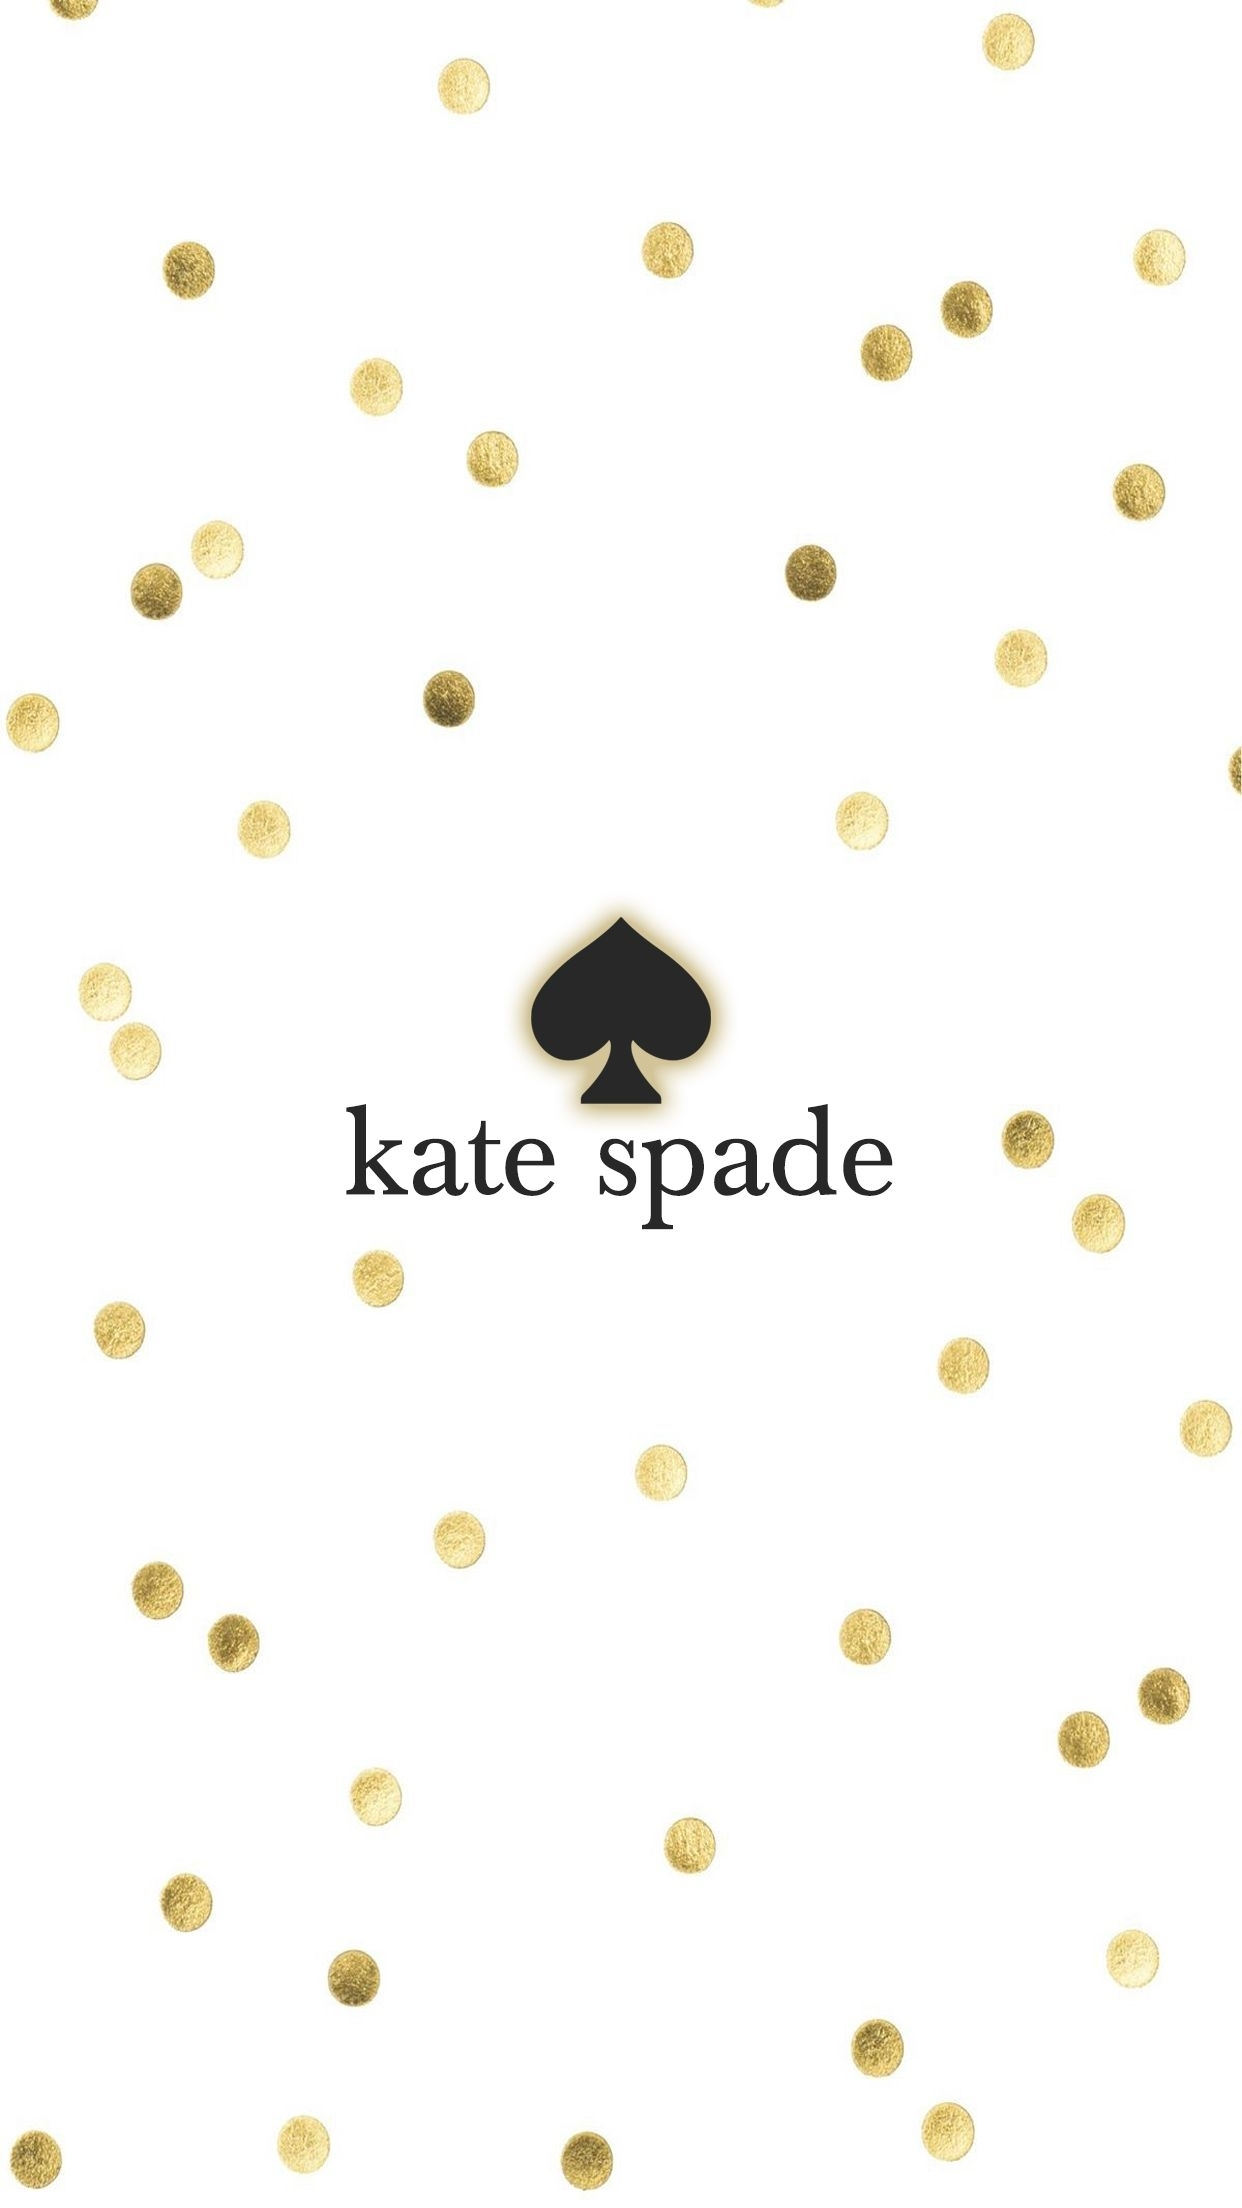 kate spade gold iphone wallpaper background | wallpapers